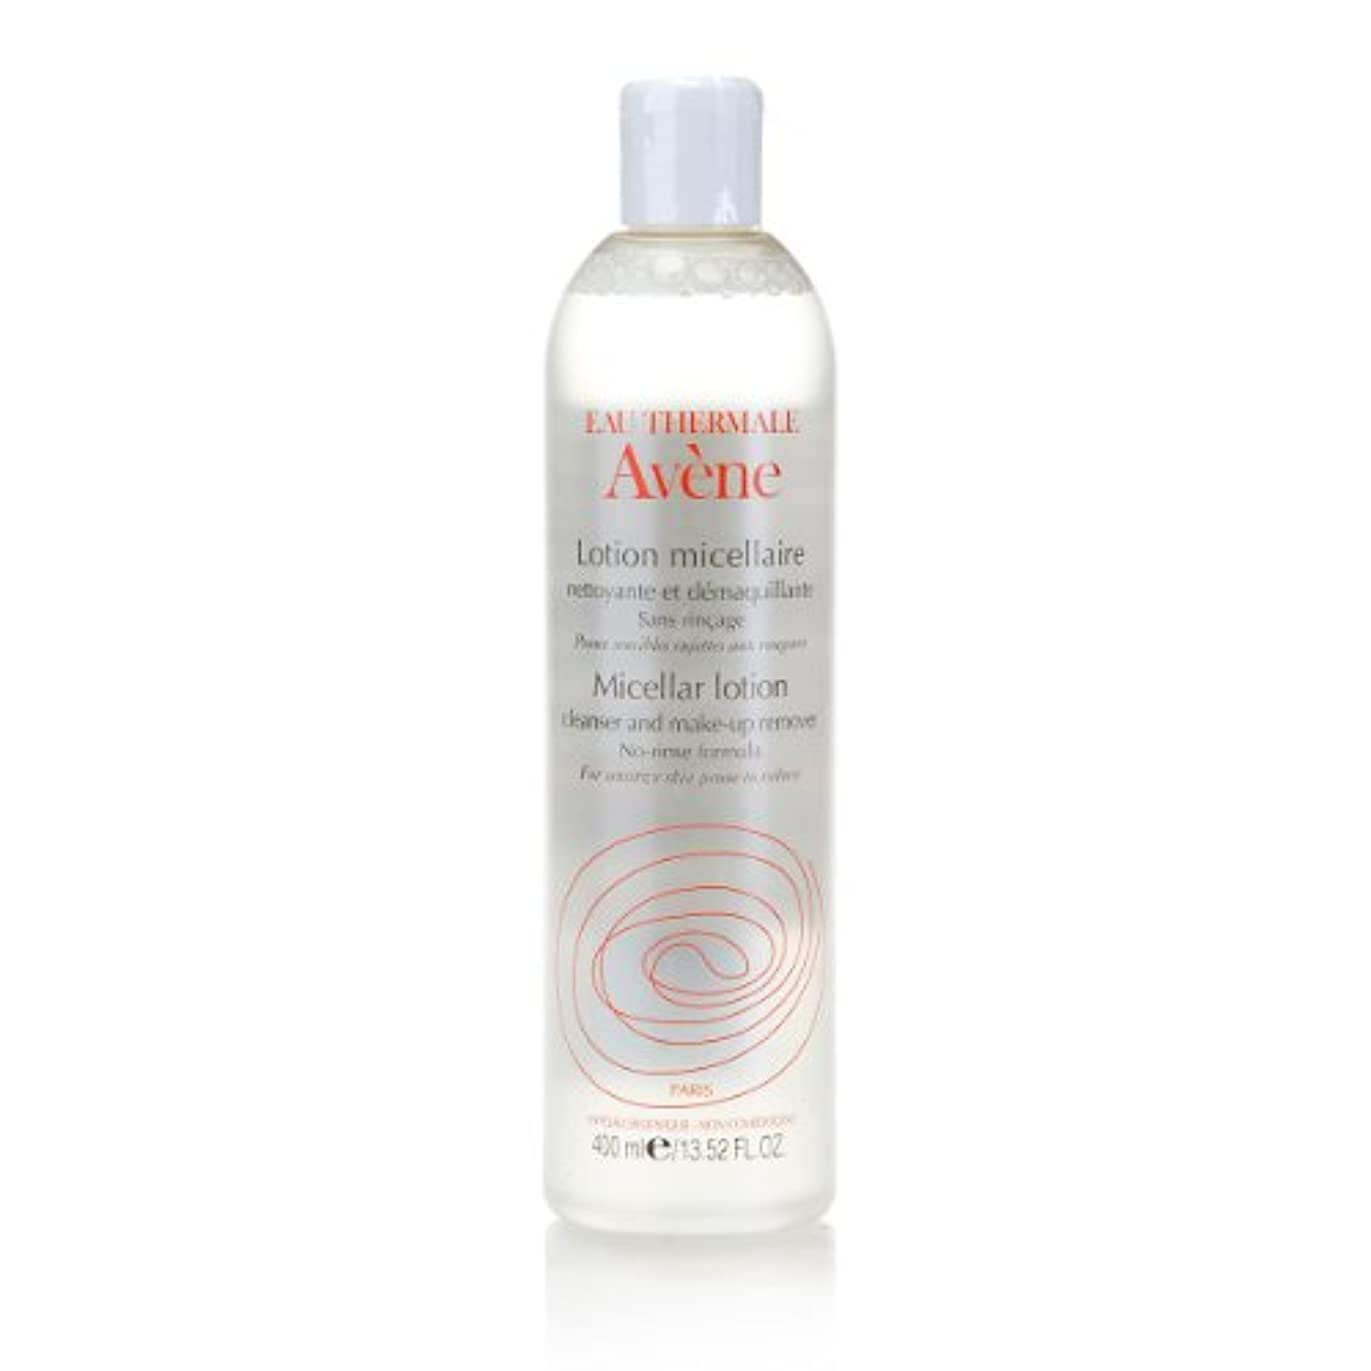 敬意機械眠りAvene Micellar Lotion Cleanser And Make-up Remover 400ml [並行輸入品]